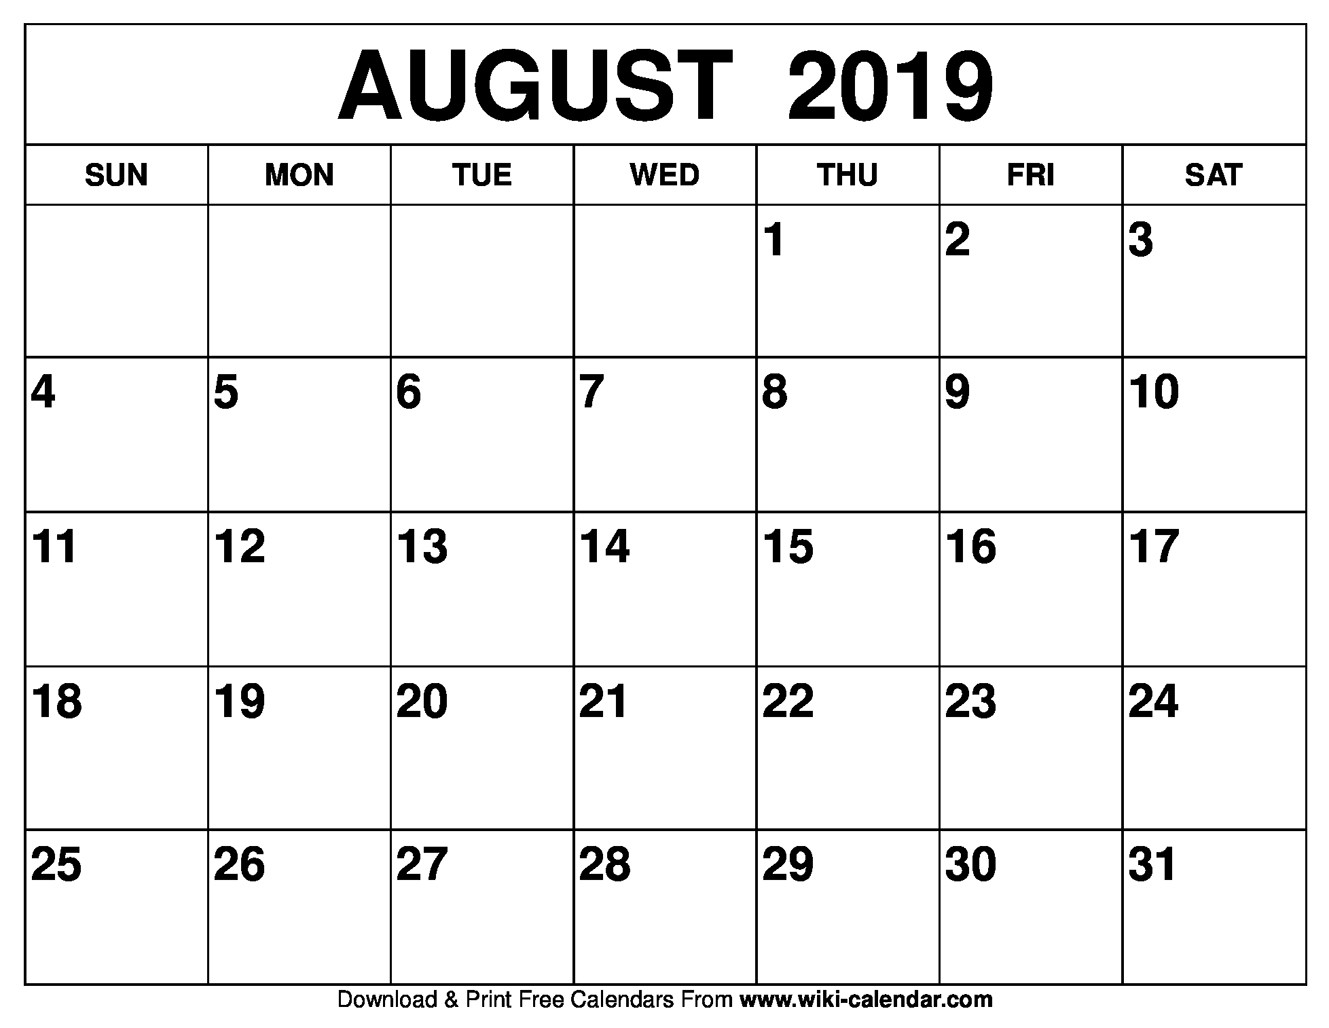 Blank August 2019 Calendar Printable regarding August Fun Calendar Template